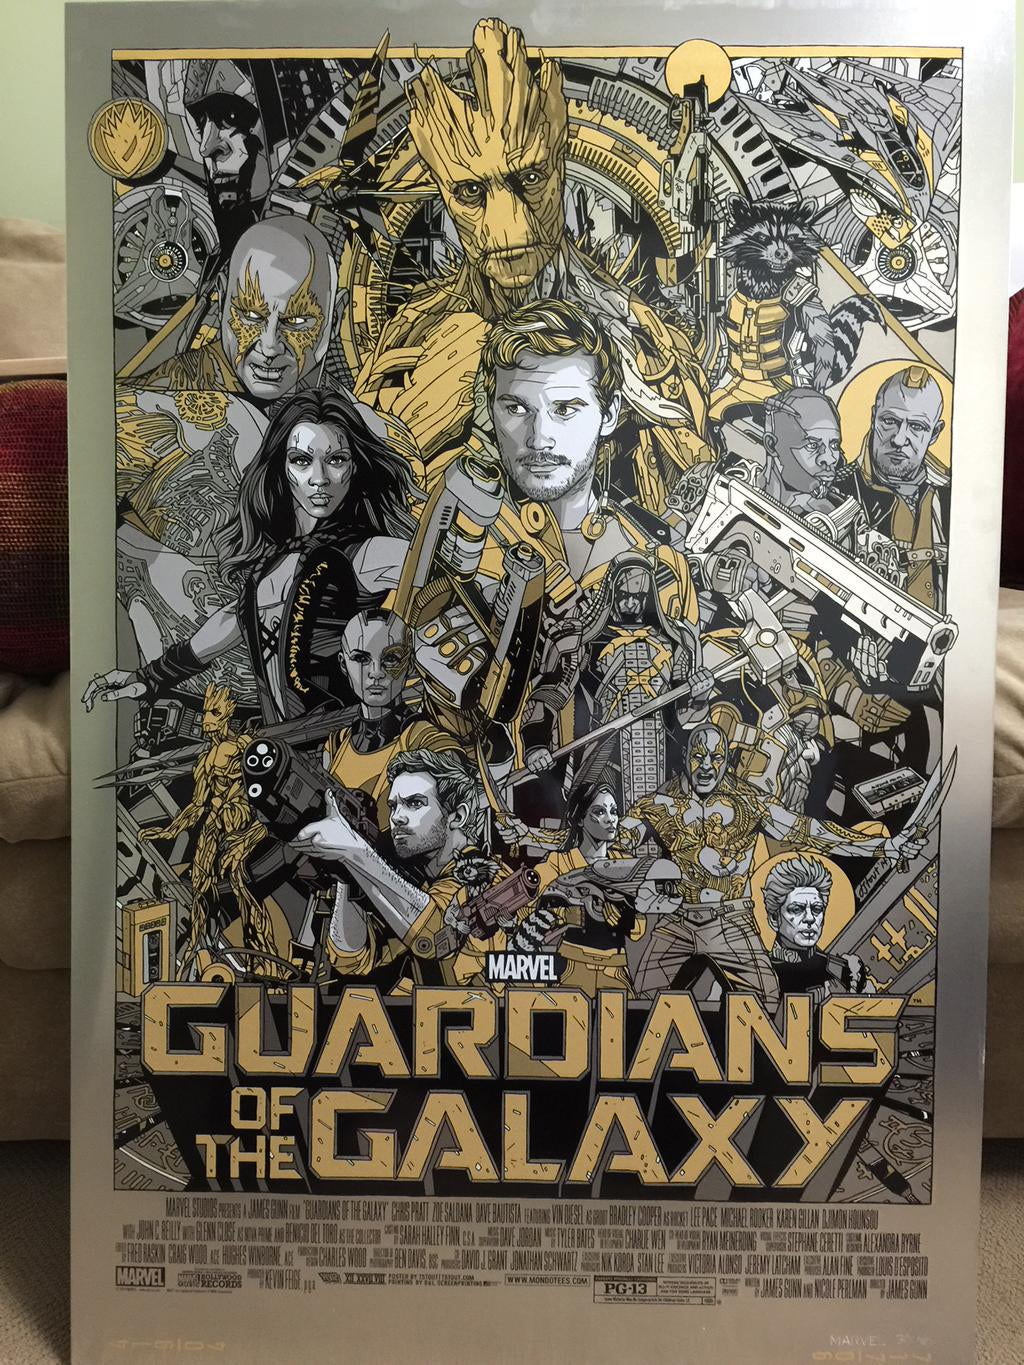 All I want for Xmas is this giant Guardians of the Galaxy metal poster